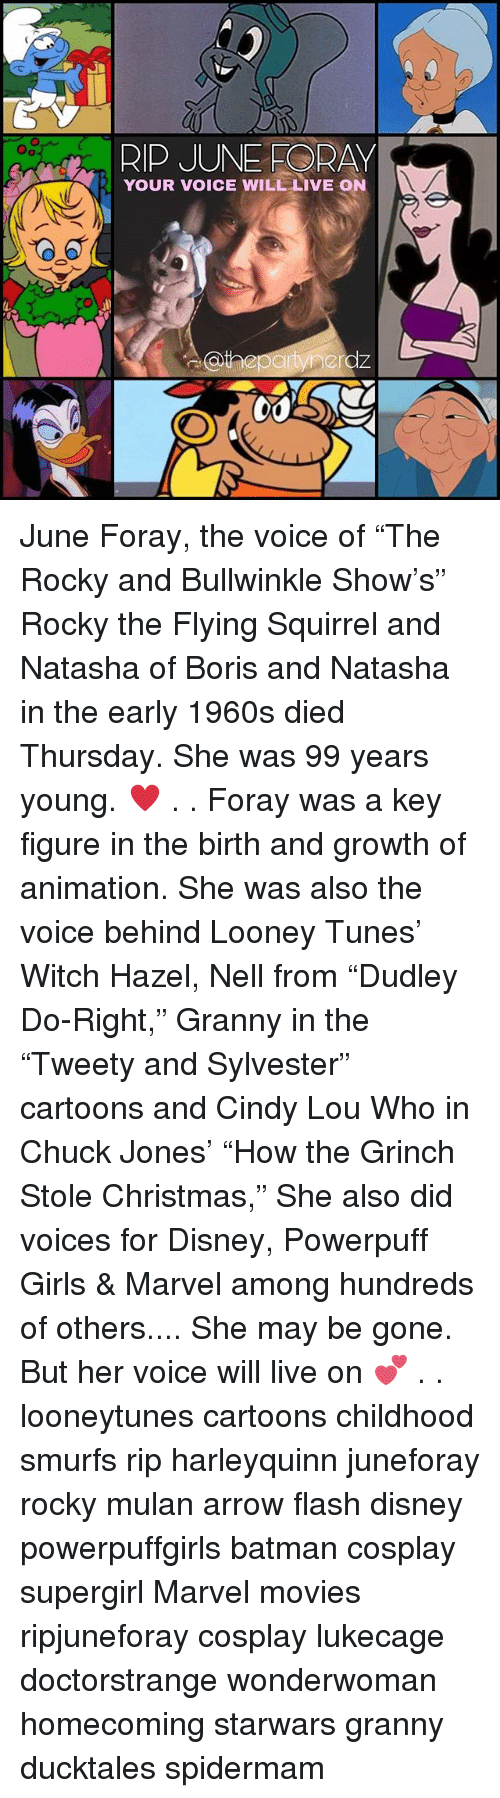 "Batman, Christmas, and Disney: RIP JUNE ORAY  YOUR VOICE WILL LIVE ON June Foray, the voice of ""The Rocky and Bullwinkle Show's"" Rocky the Flying Squirrel and Natasha of Boris and Natasha in the early 1960s died Thursday. She was 99 years young. ♥️ . . Foray was a key figure in the birth and growth of animation. She was also the voice behind Looney Tunes' Witch Hazel, Nell from ""Dudley Do-Right,"" Granny in the ""Tweety and Sylvester"" cartoons and Cindy Lou Who in Chuck Jones' ""How the Grinch Stole Christmas,"" She also did voices for Disney, Powerpuff Girls & Marvel among hundreds of others.... She may be gone. But her voice will live on 💕 . . looneytunes cartoons childhood smurfs rip harleyquinn juneforay rocky mulan arrow flash disney powerpuffgirls batman cosplay supergirl Marvel movies ripjuneforay cosplay lukecage doctorstrange wonderwoman homecoming starwars granny ducktales spidermam"